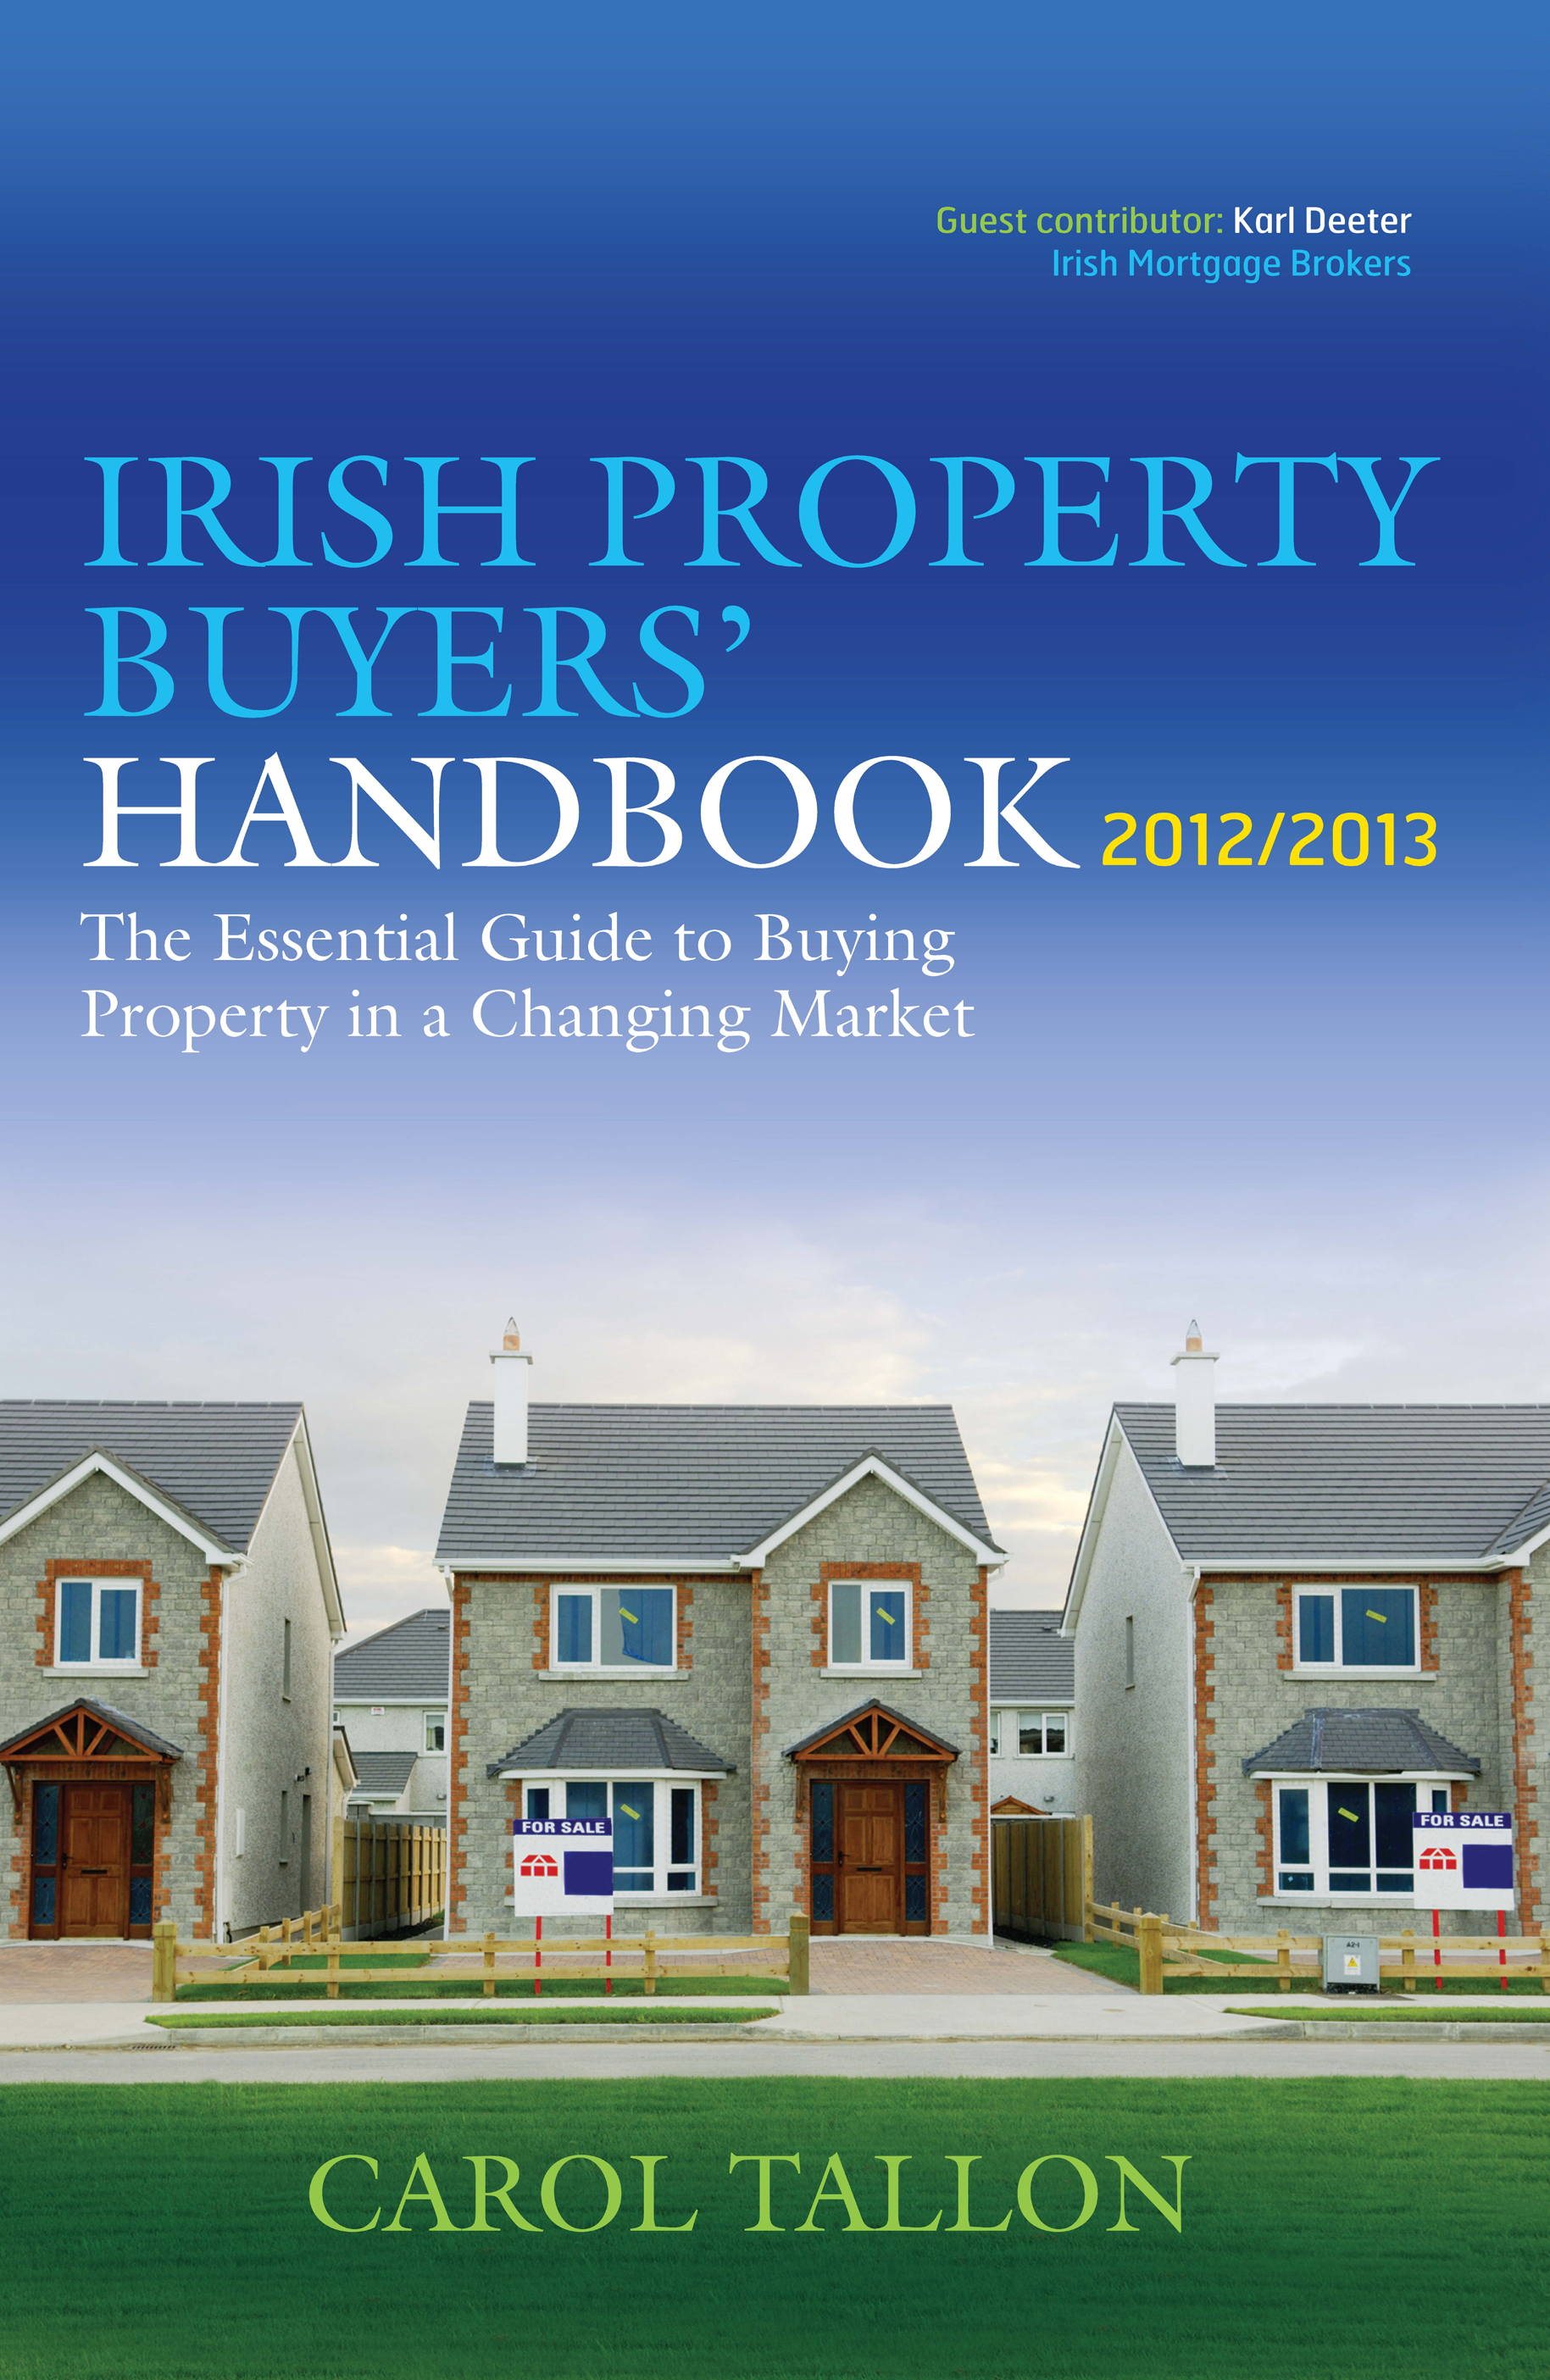 The Irish Property Buyers' Handbook 2012/2013: The Essential Guide Guide to Buying Property in a Changing Market